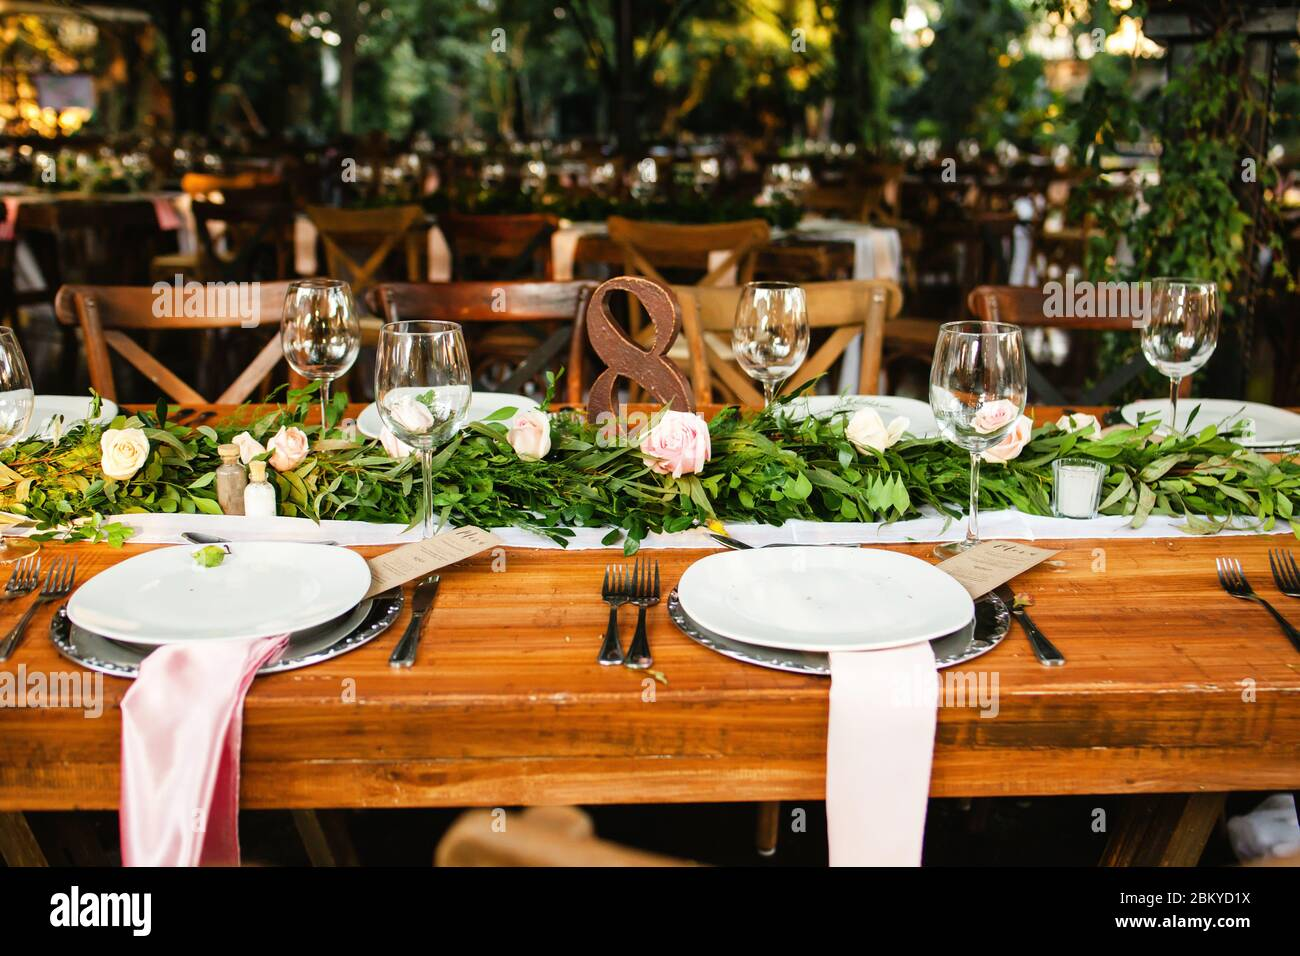 Table Setup Wedding Guest Table Reception Layout Vintage And Rustic Stock Photo Alamy